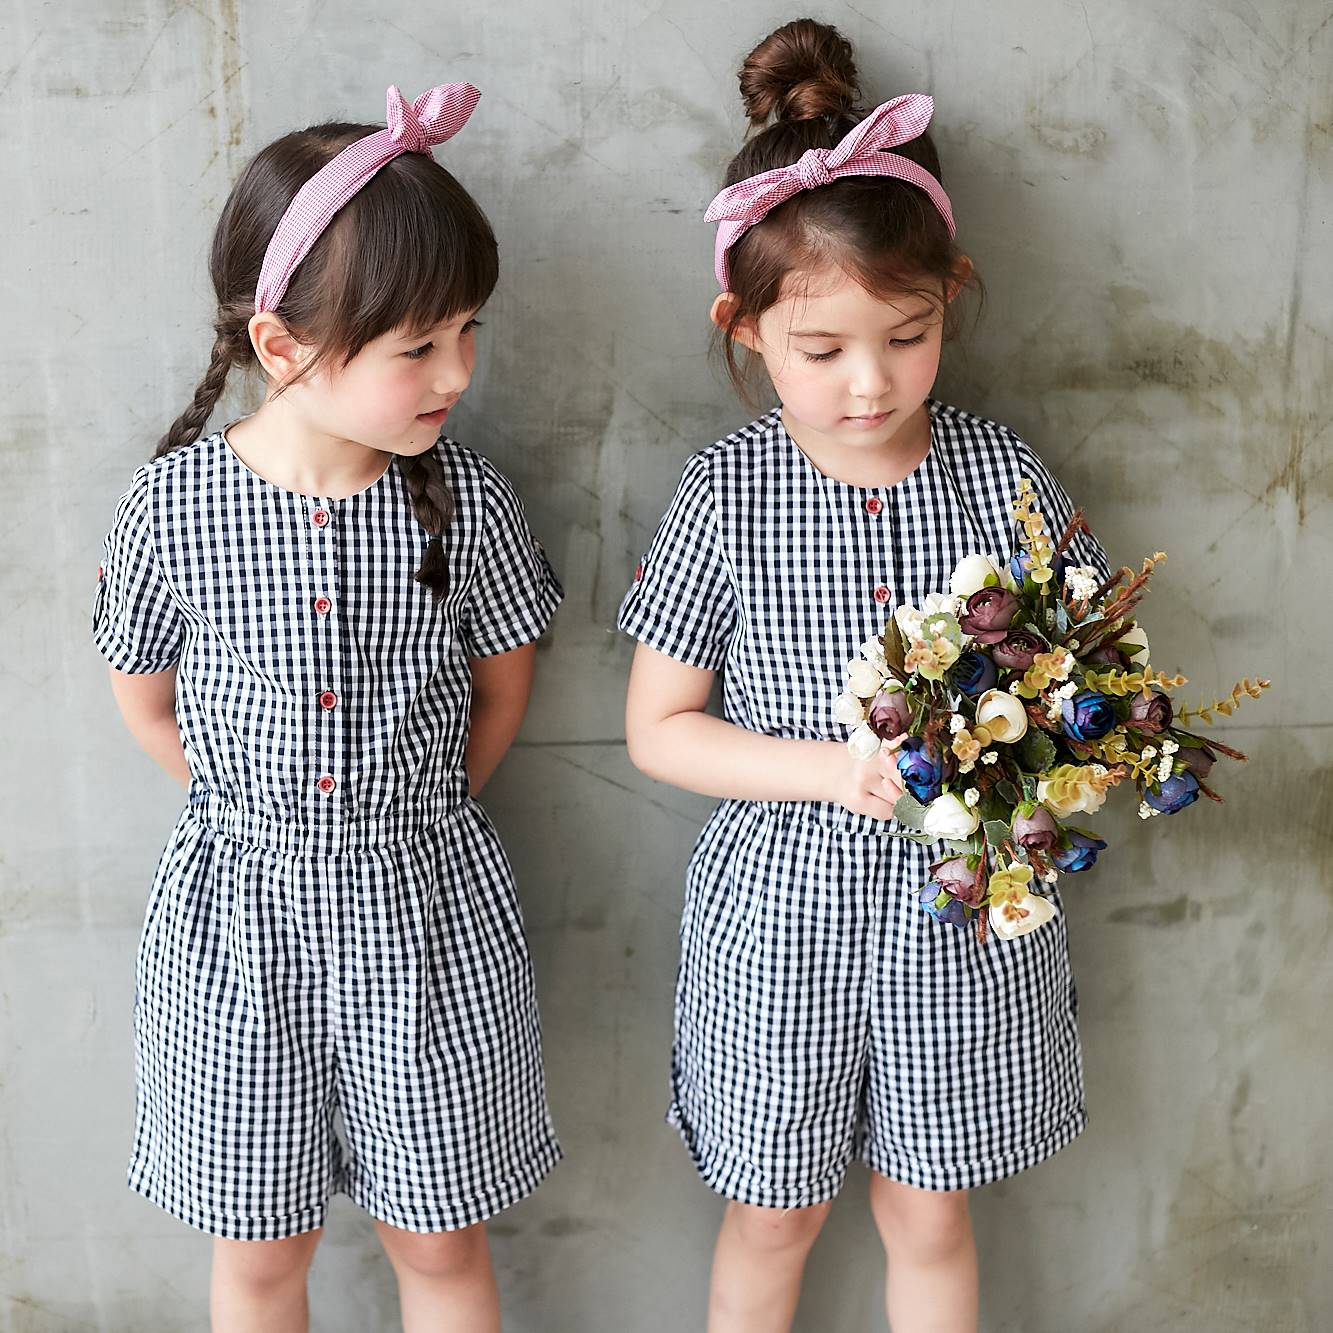 Dark Blue & White Gingham Button-Front Romper - Bunny n Bloom Mommy & Me Dress